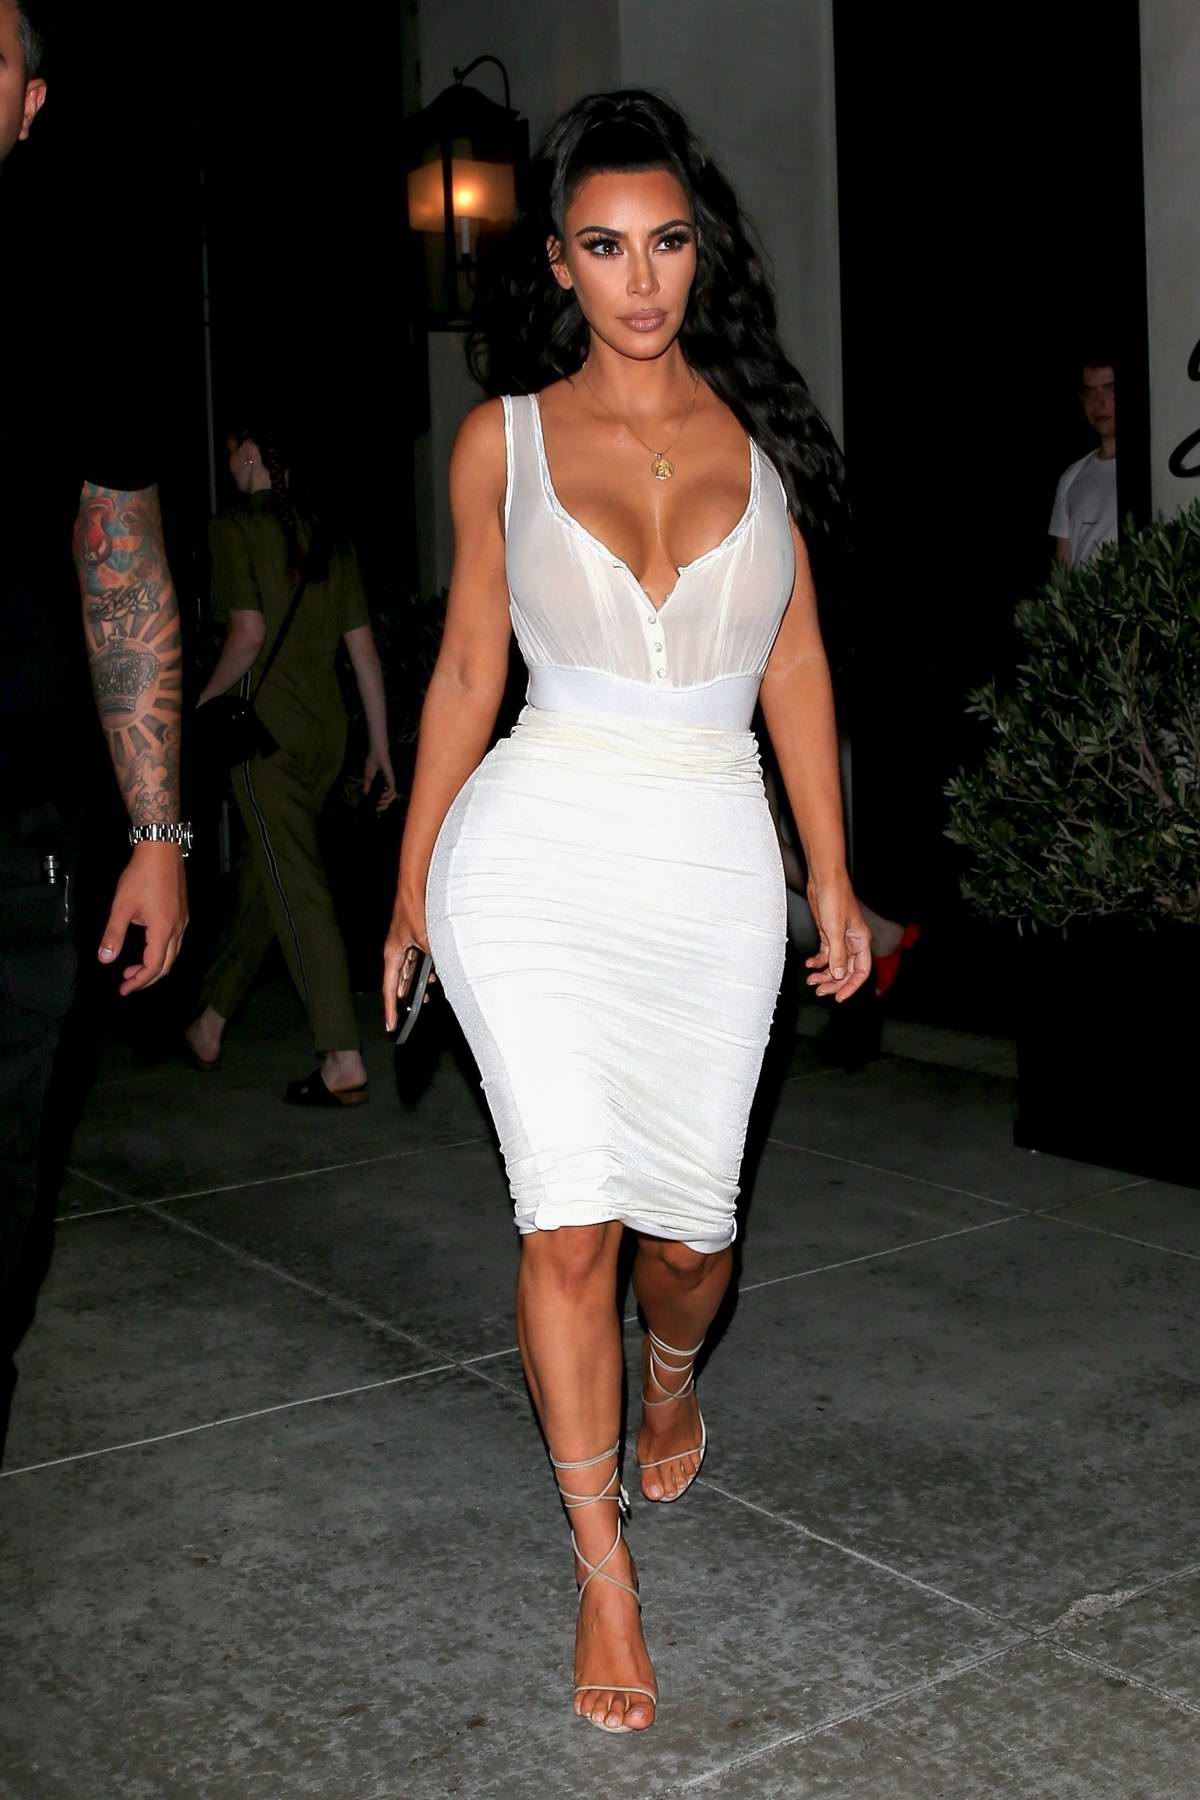 Kim Kardashian Spotted In A White Dress While Leaving